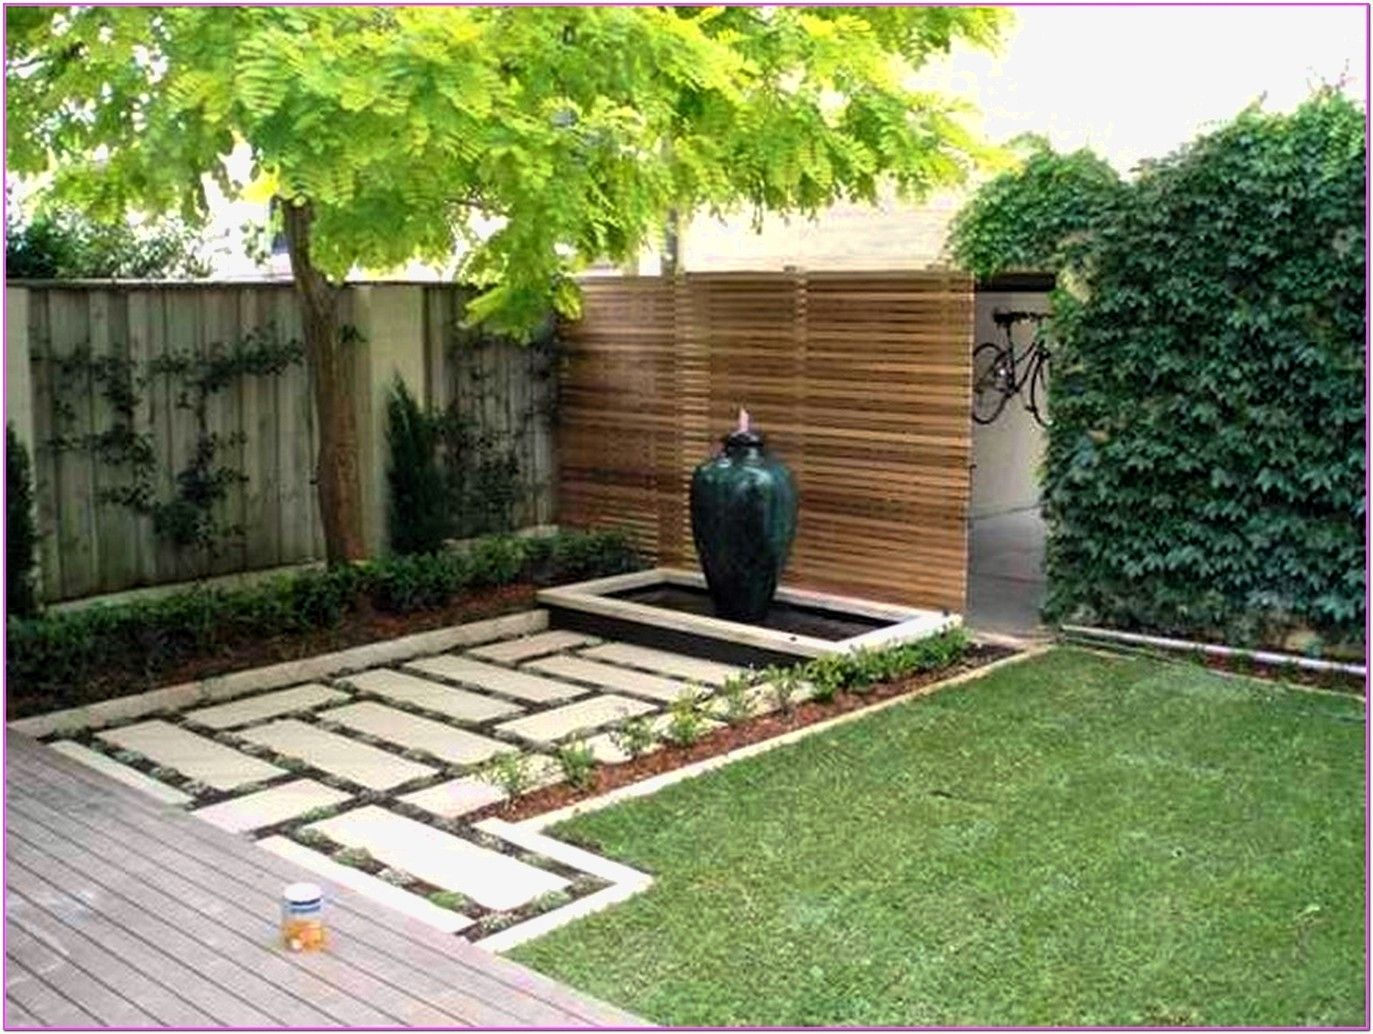 I Could See Borrowing Some Ideas From This Award Winning ... on Modern Landscaping Ideas For Small Backyards  id=62270